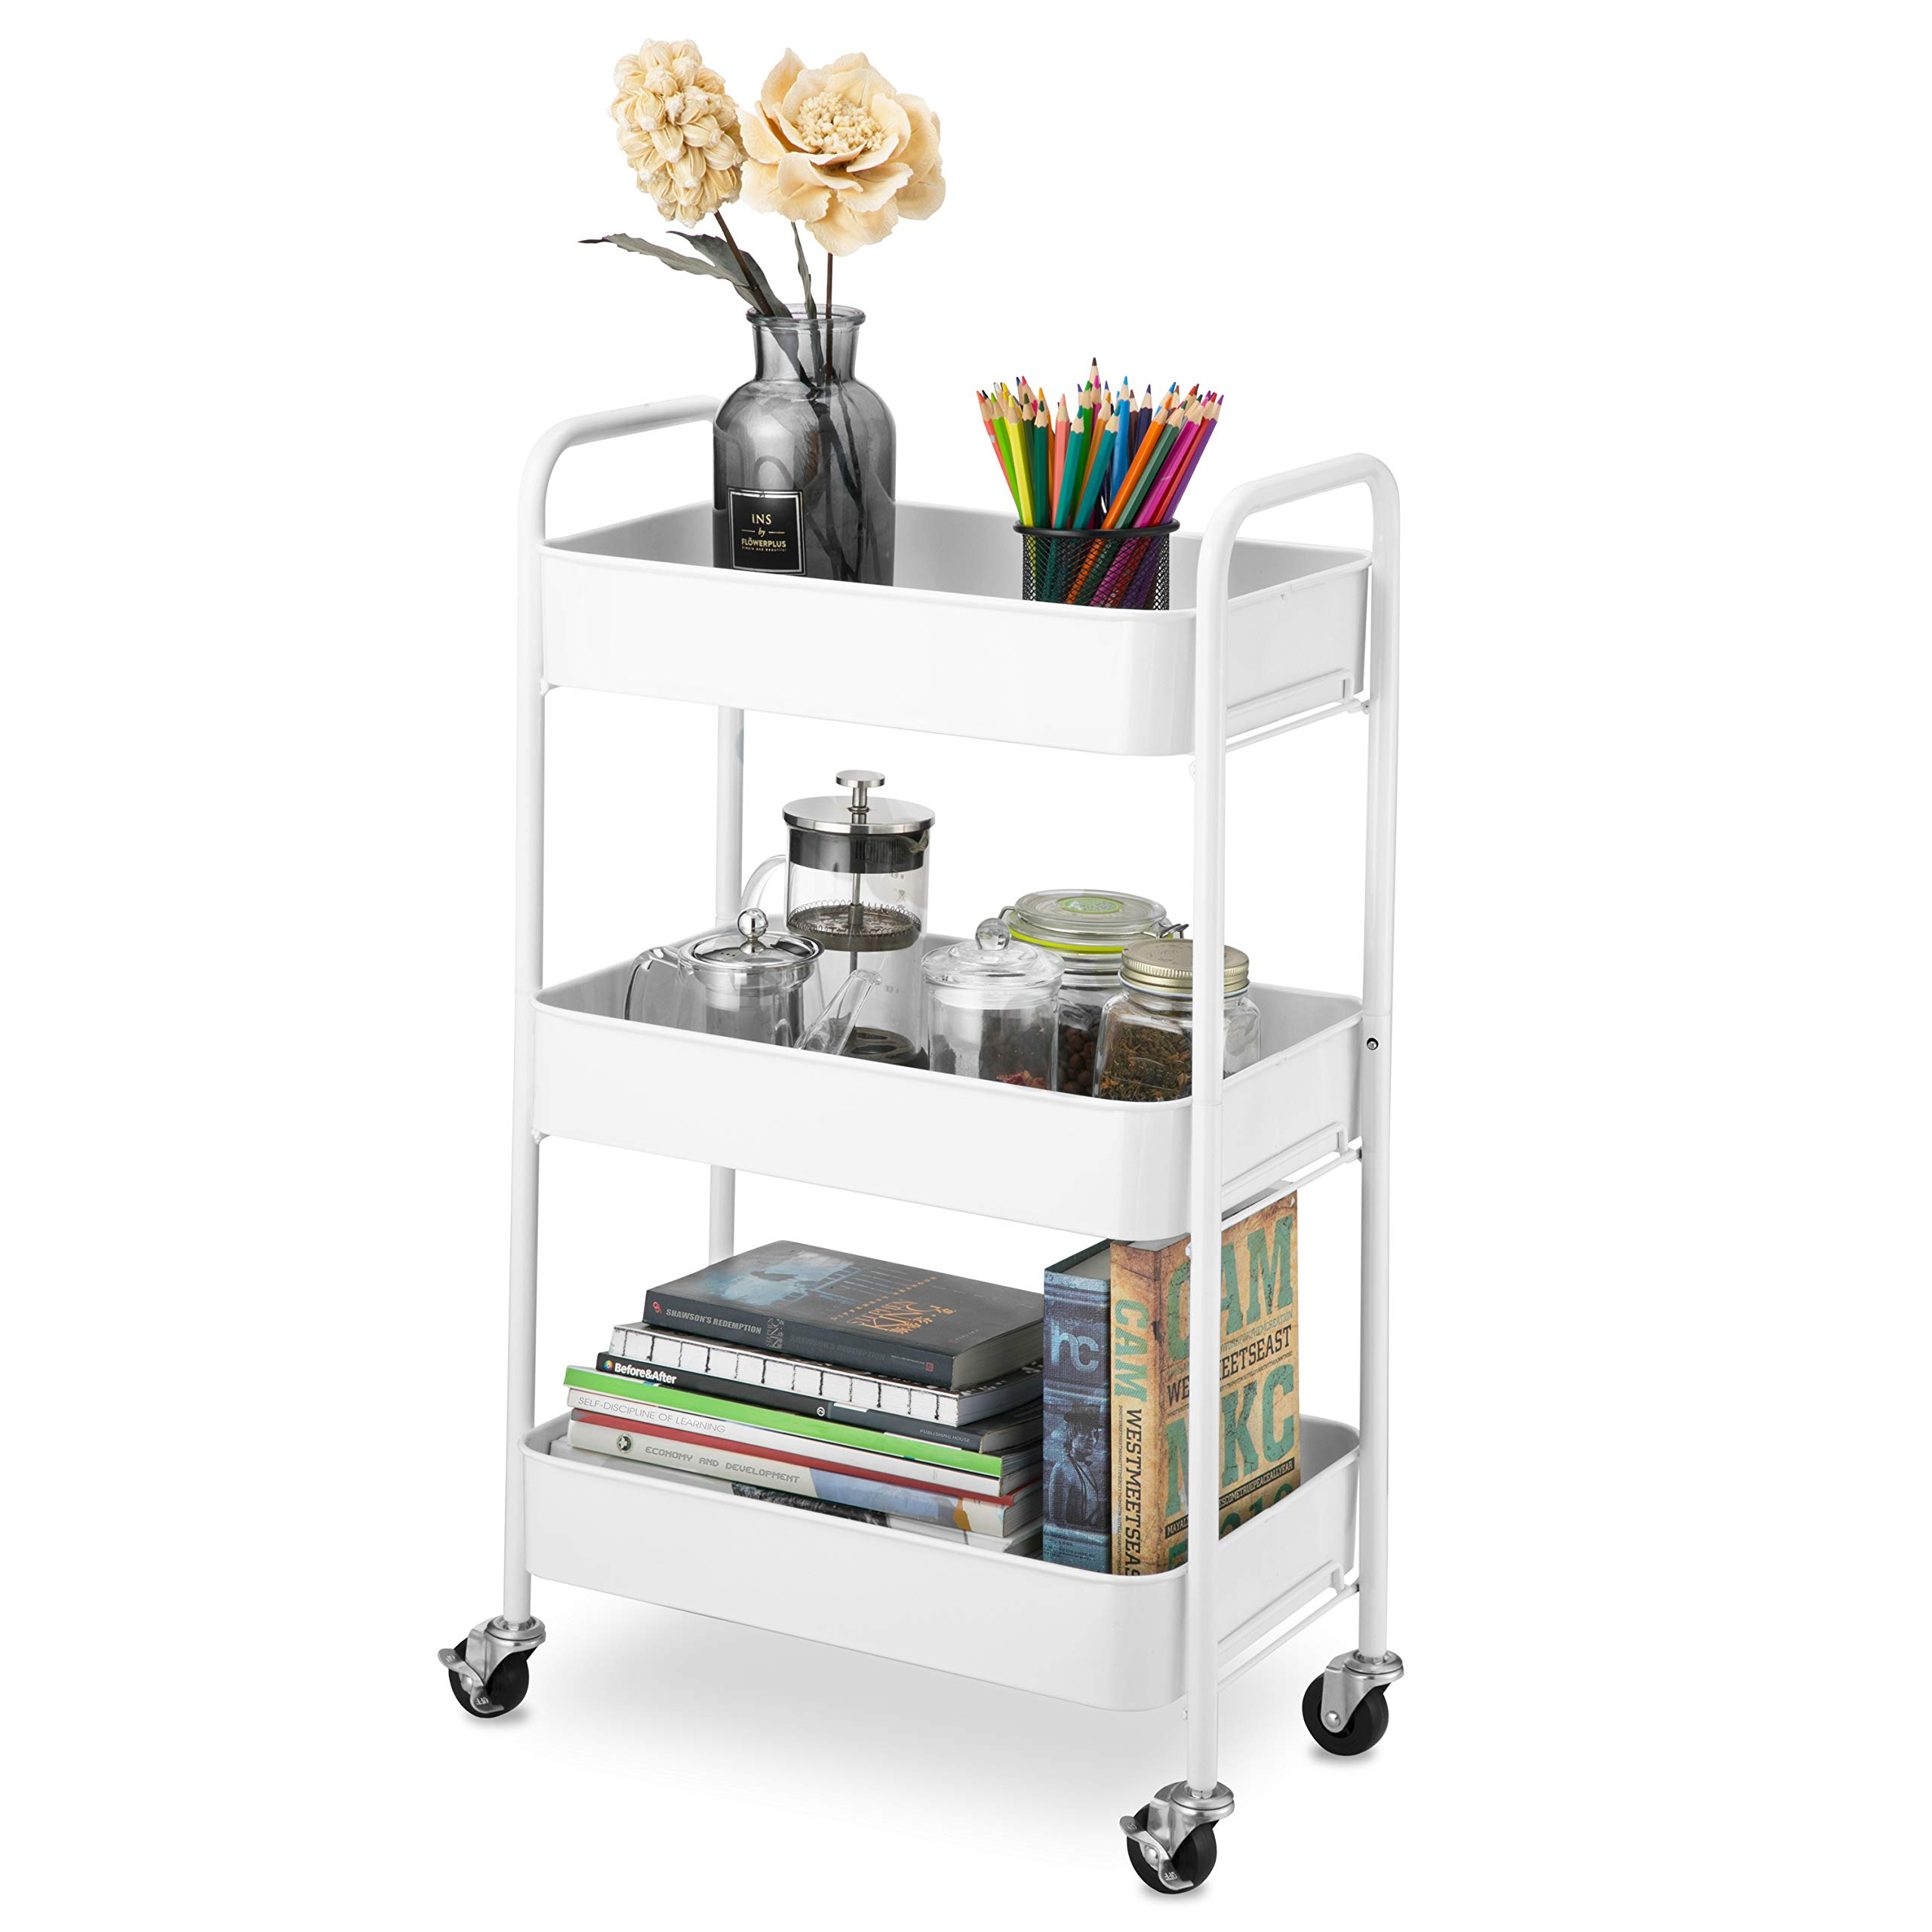 CAXXA 3-Tier Rolling Metal Storage Organizer - Mobile Utility Cart with Caster Wheels, White by CAXXA